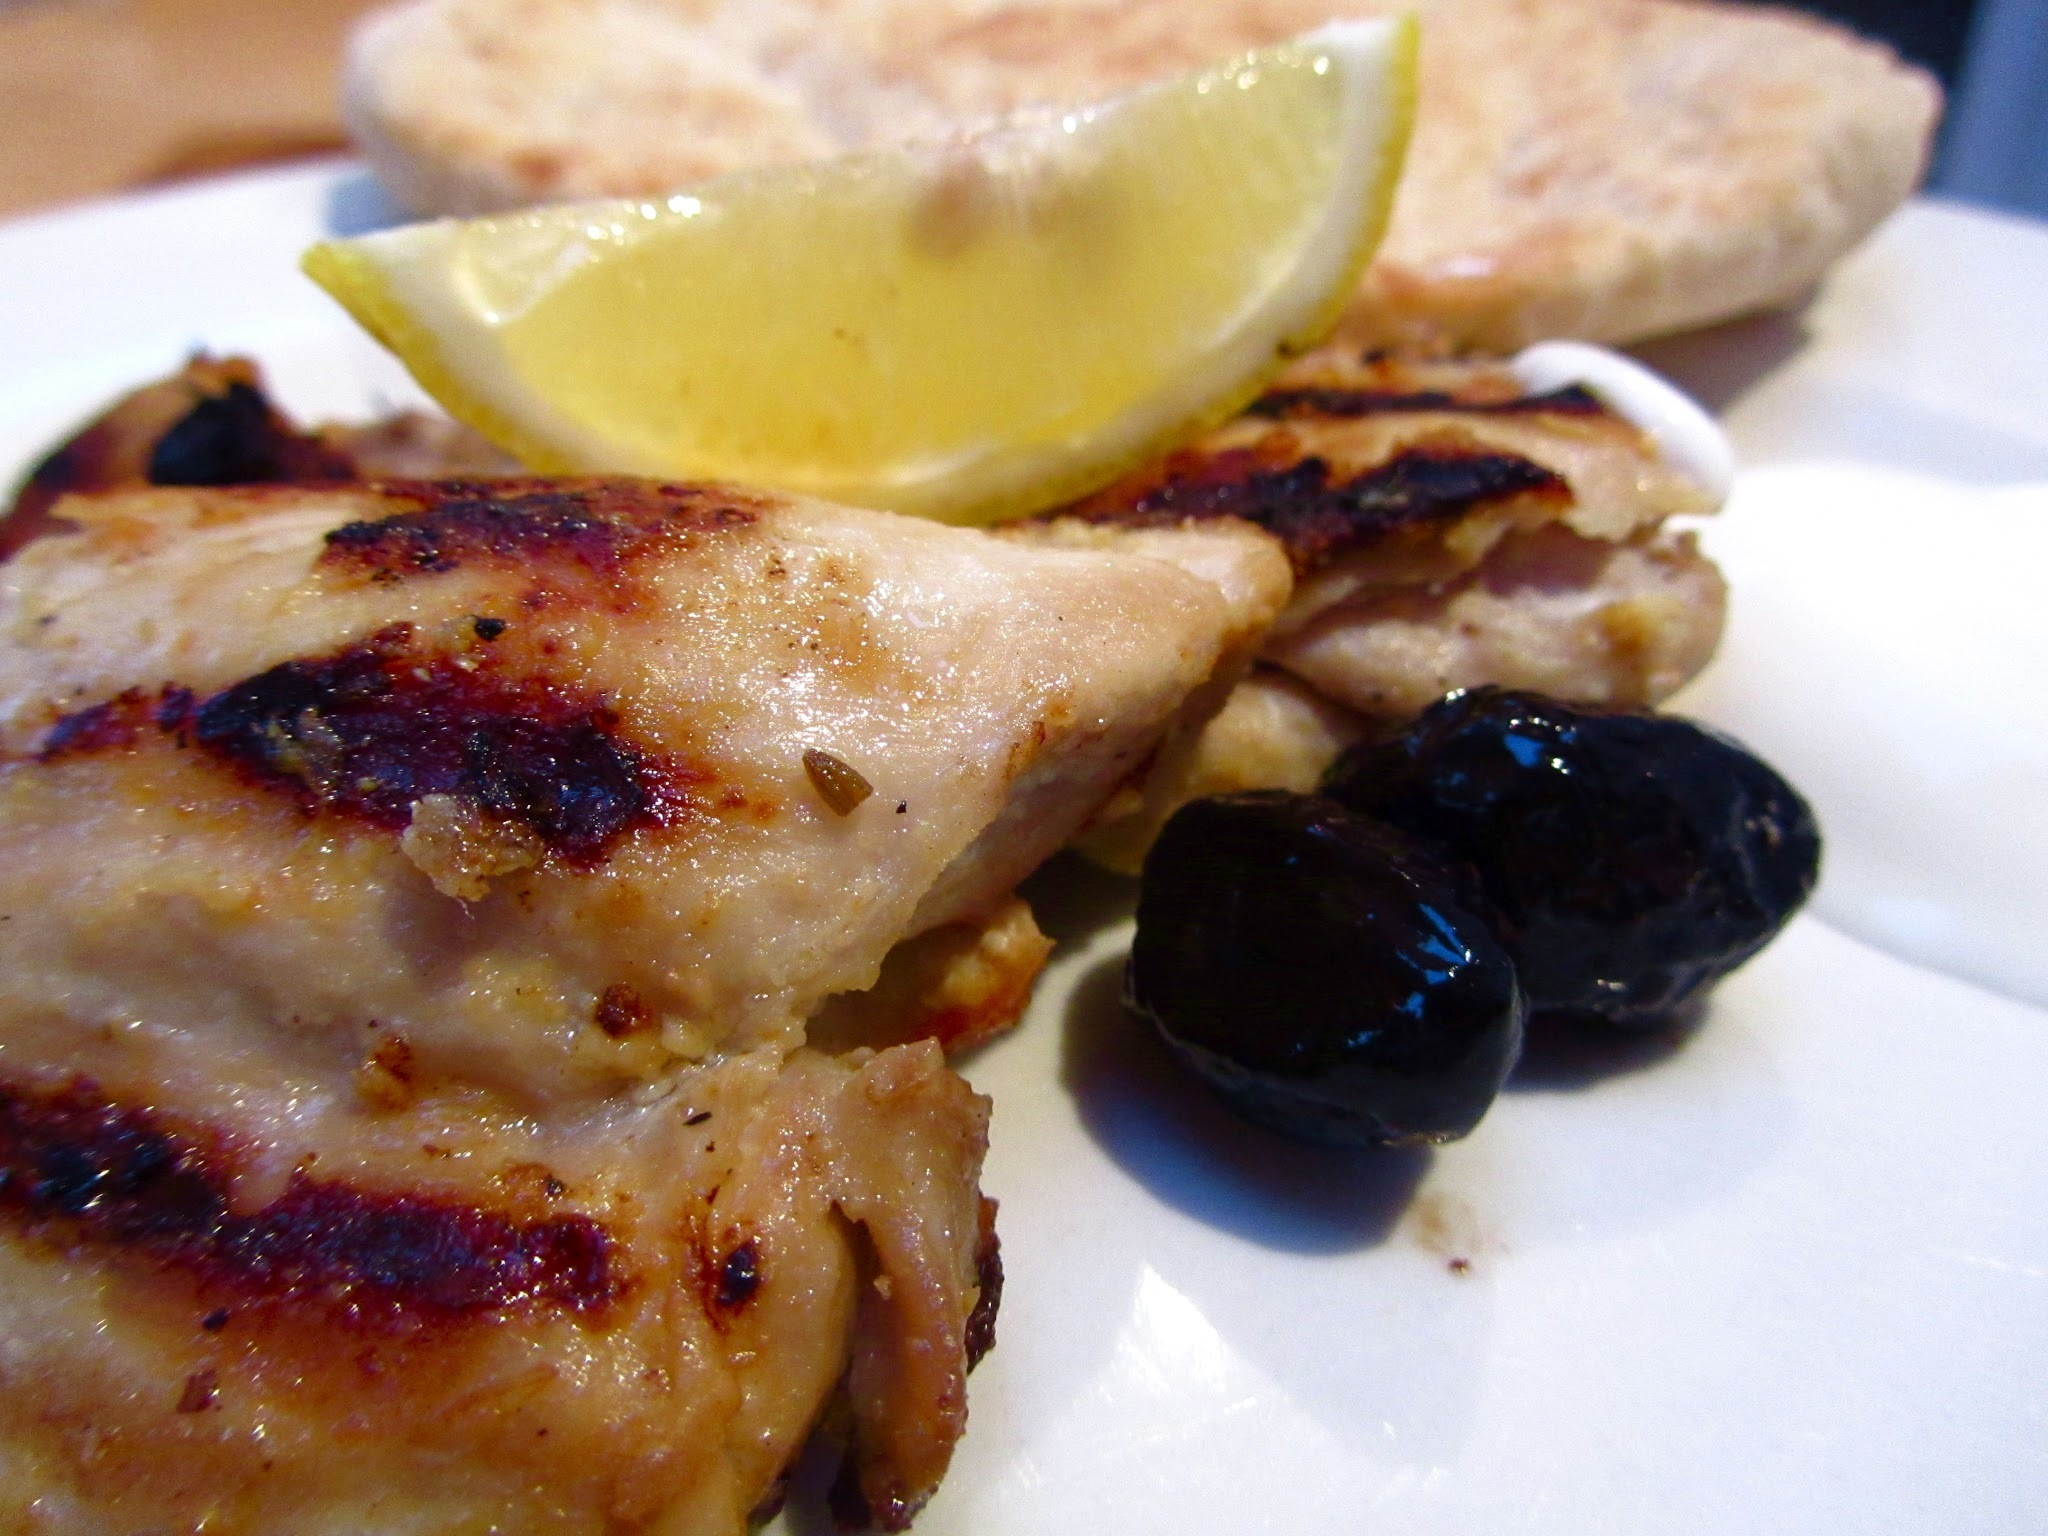 Tavuk izgara (chargrilled chicken with yoghurt and spices)